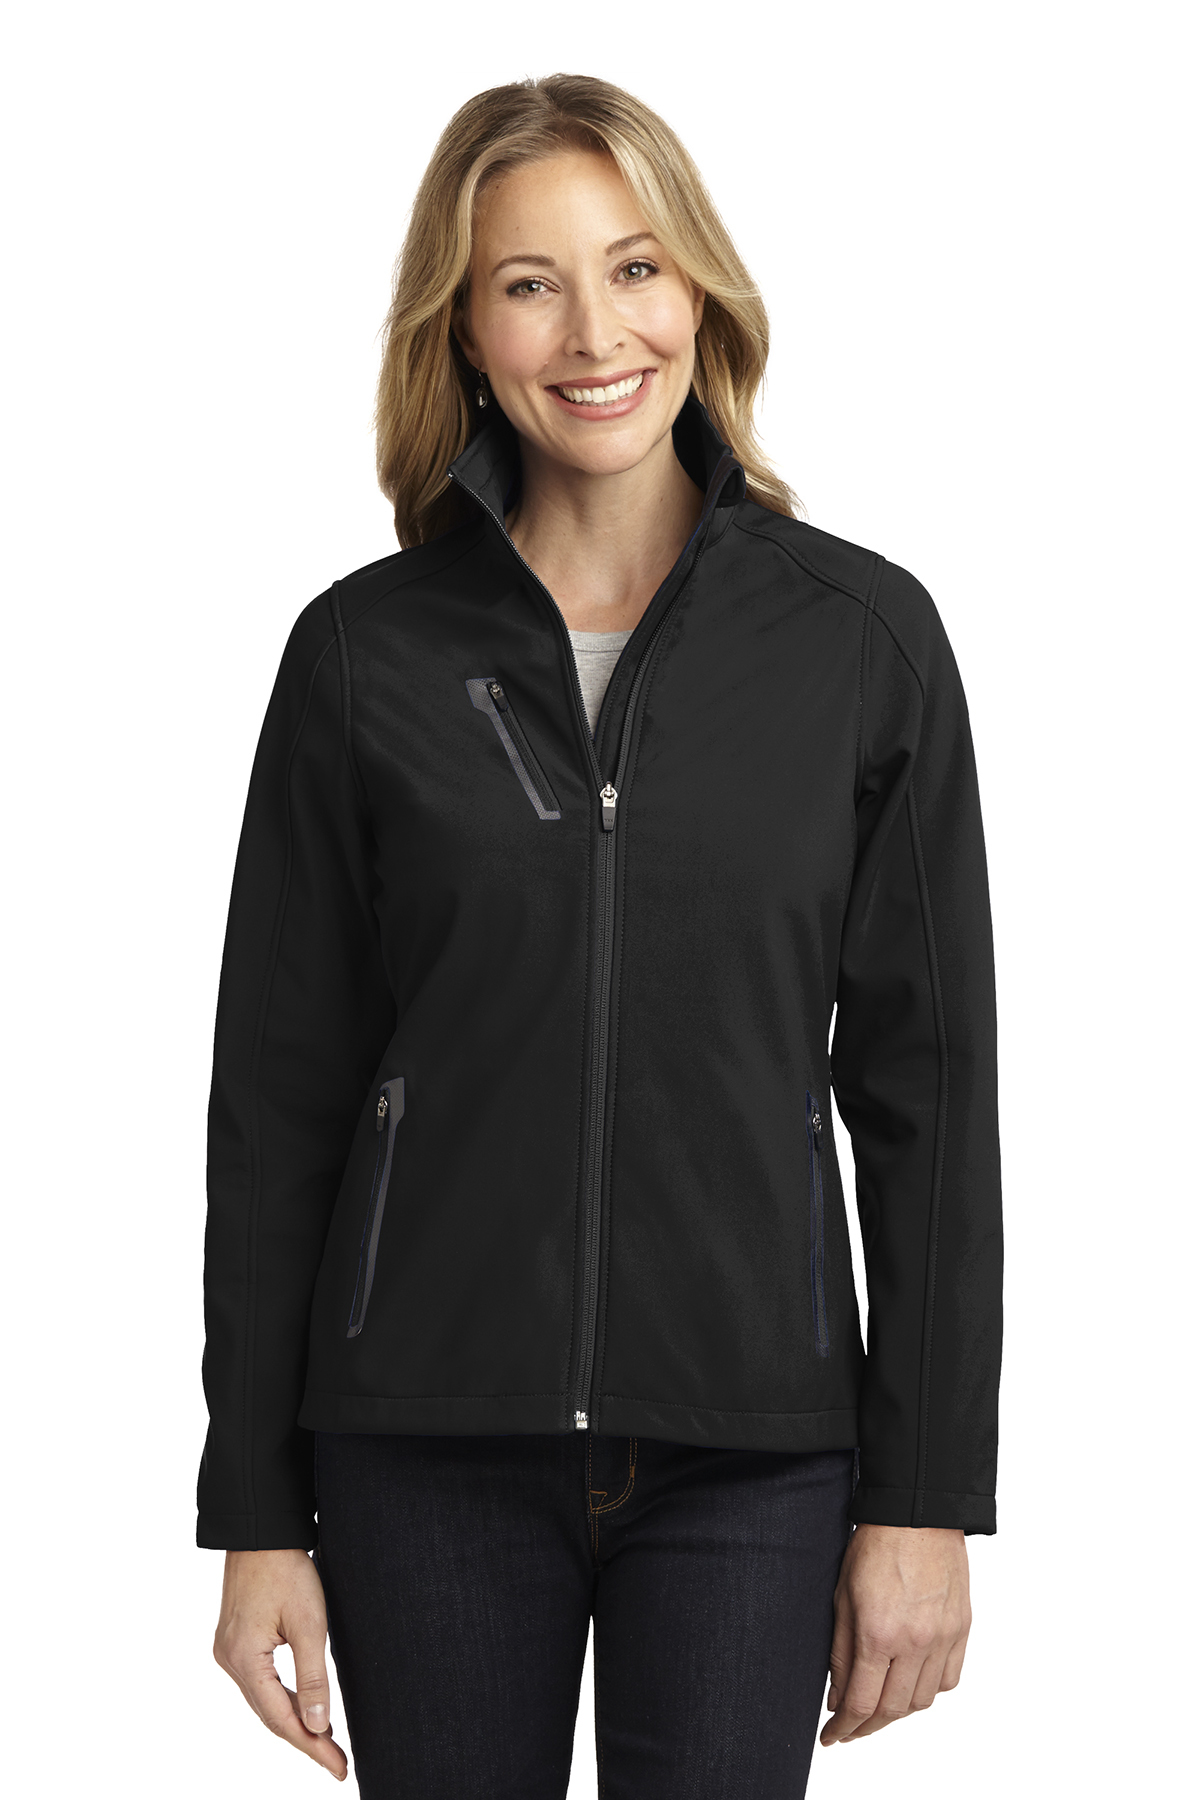 Port Authority L324 Ladies Welded Soft Shell Jacket